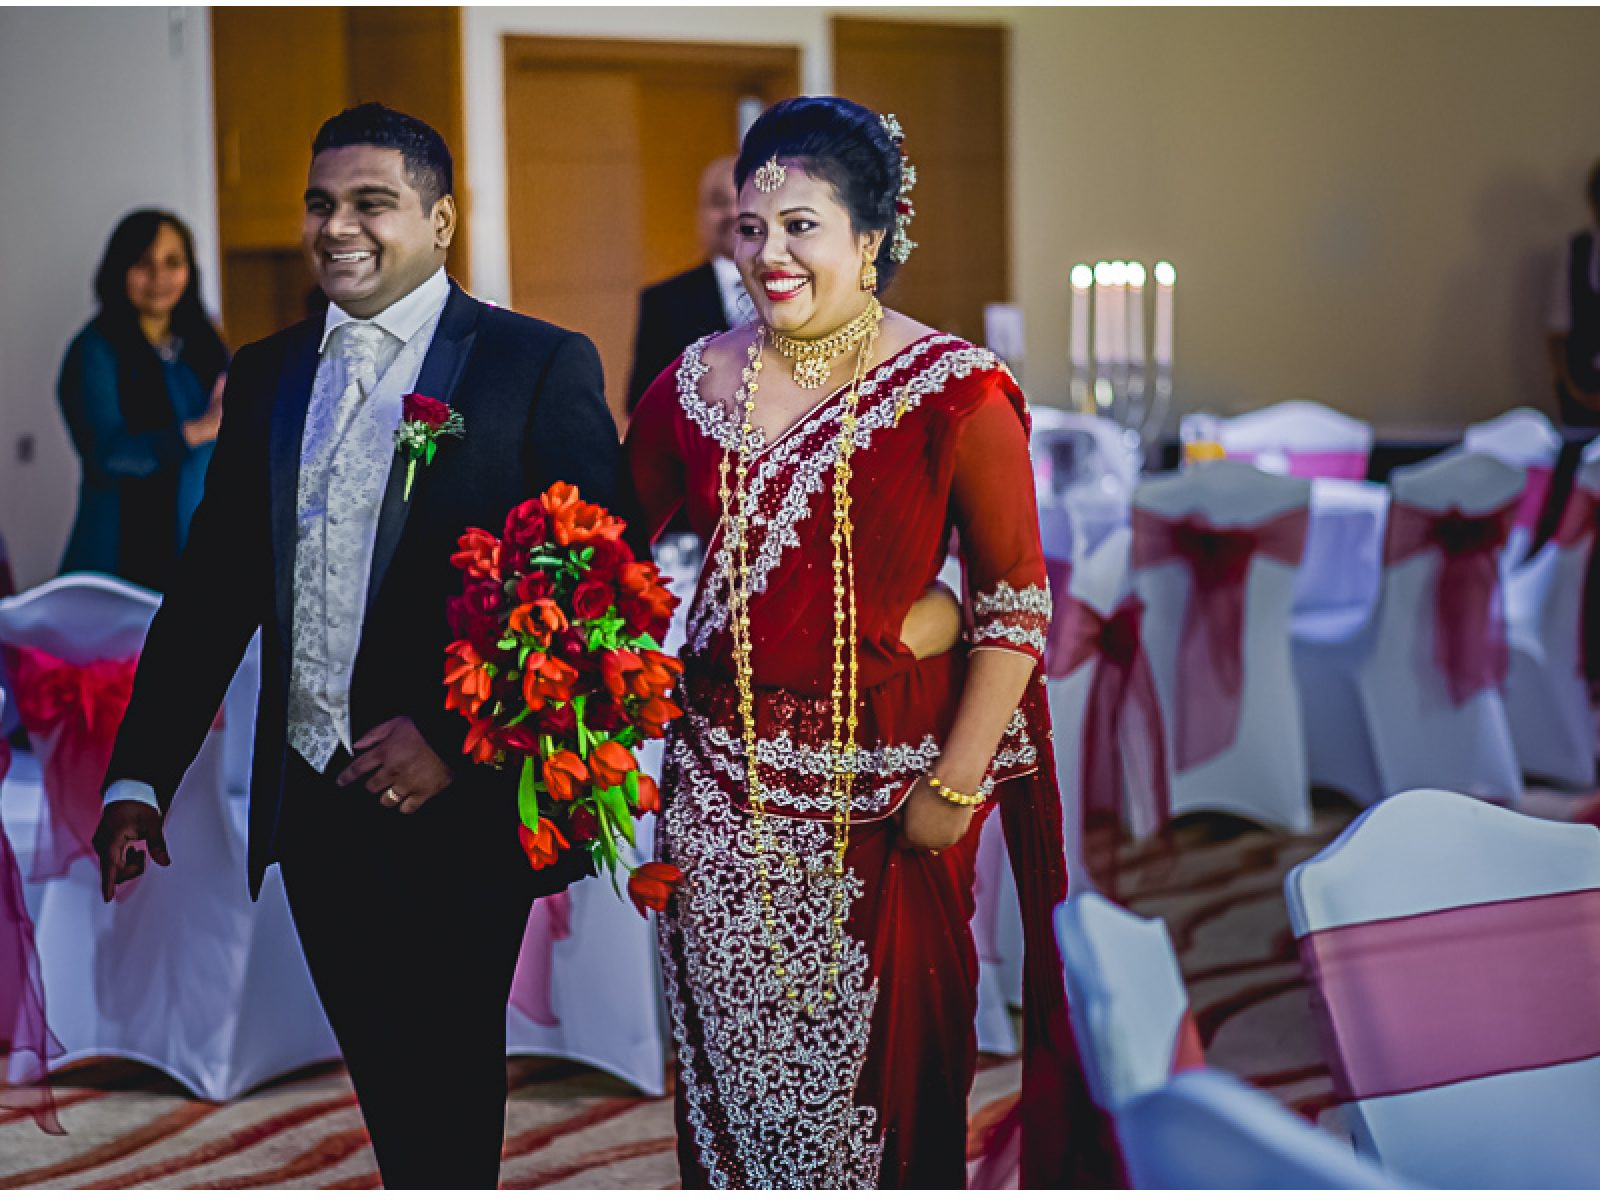 70 1600x1200 - Darshani and Anthony - wedding photographer in London